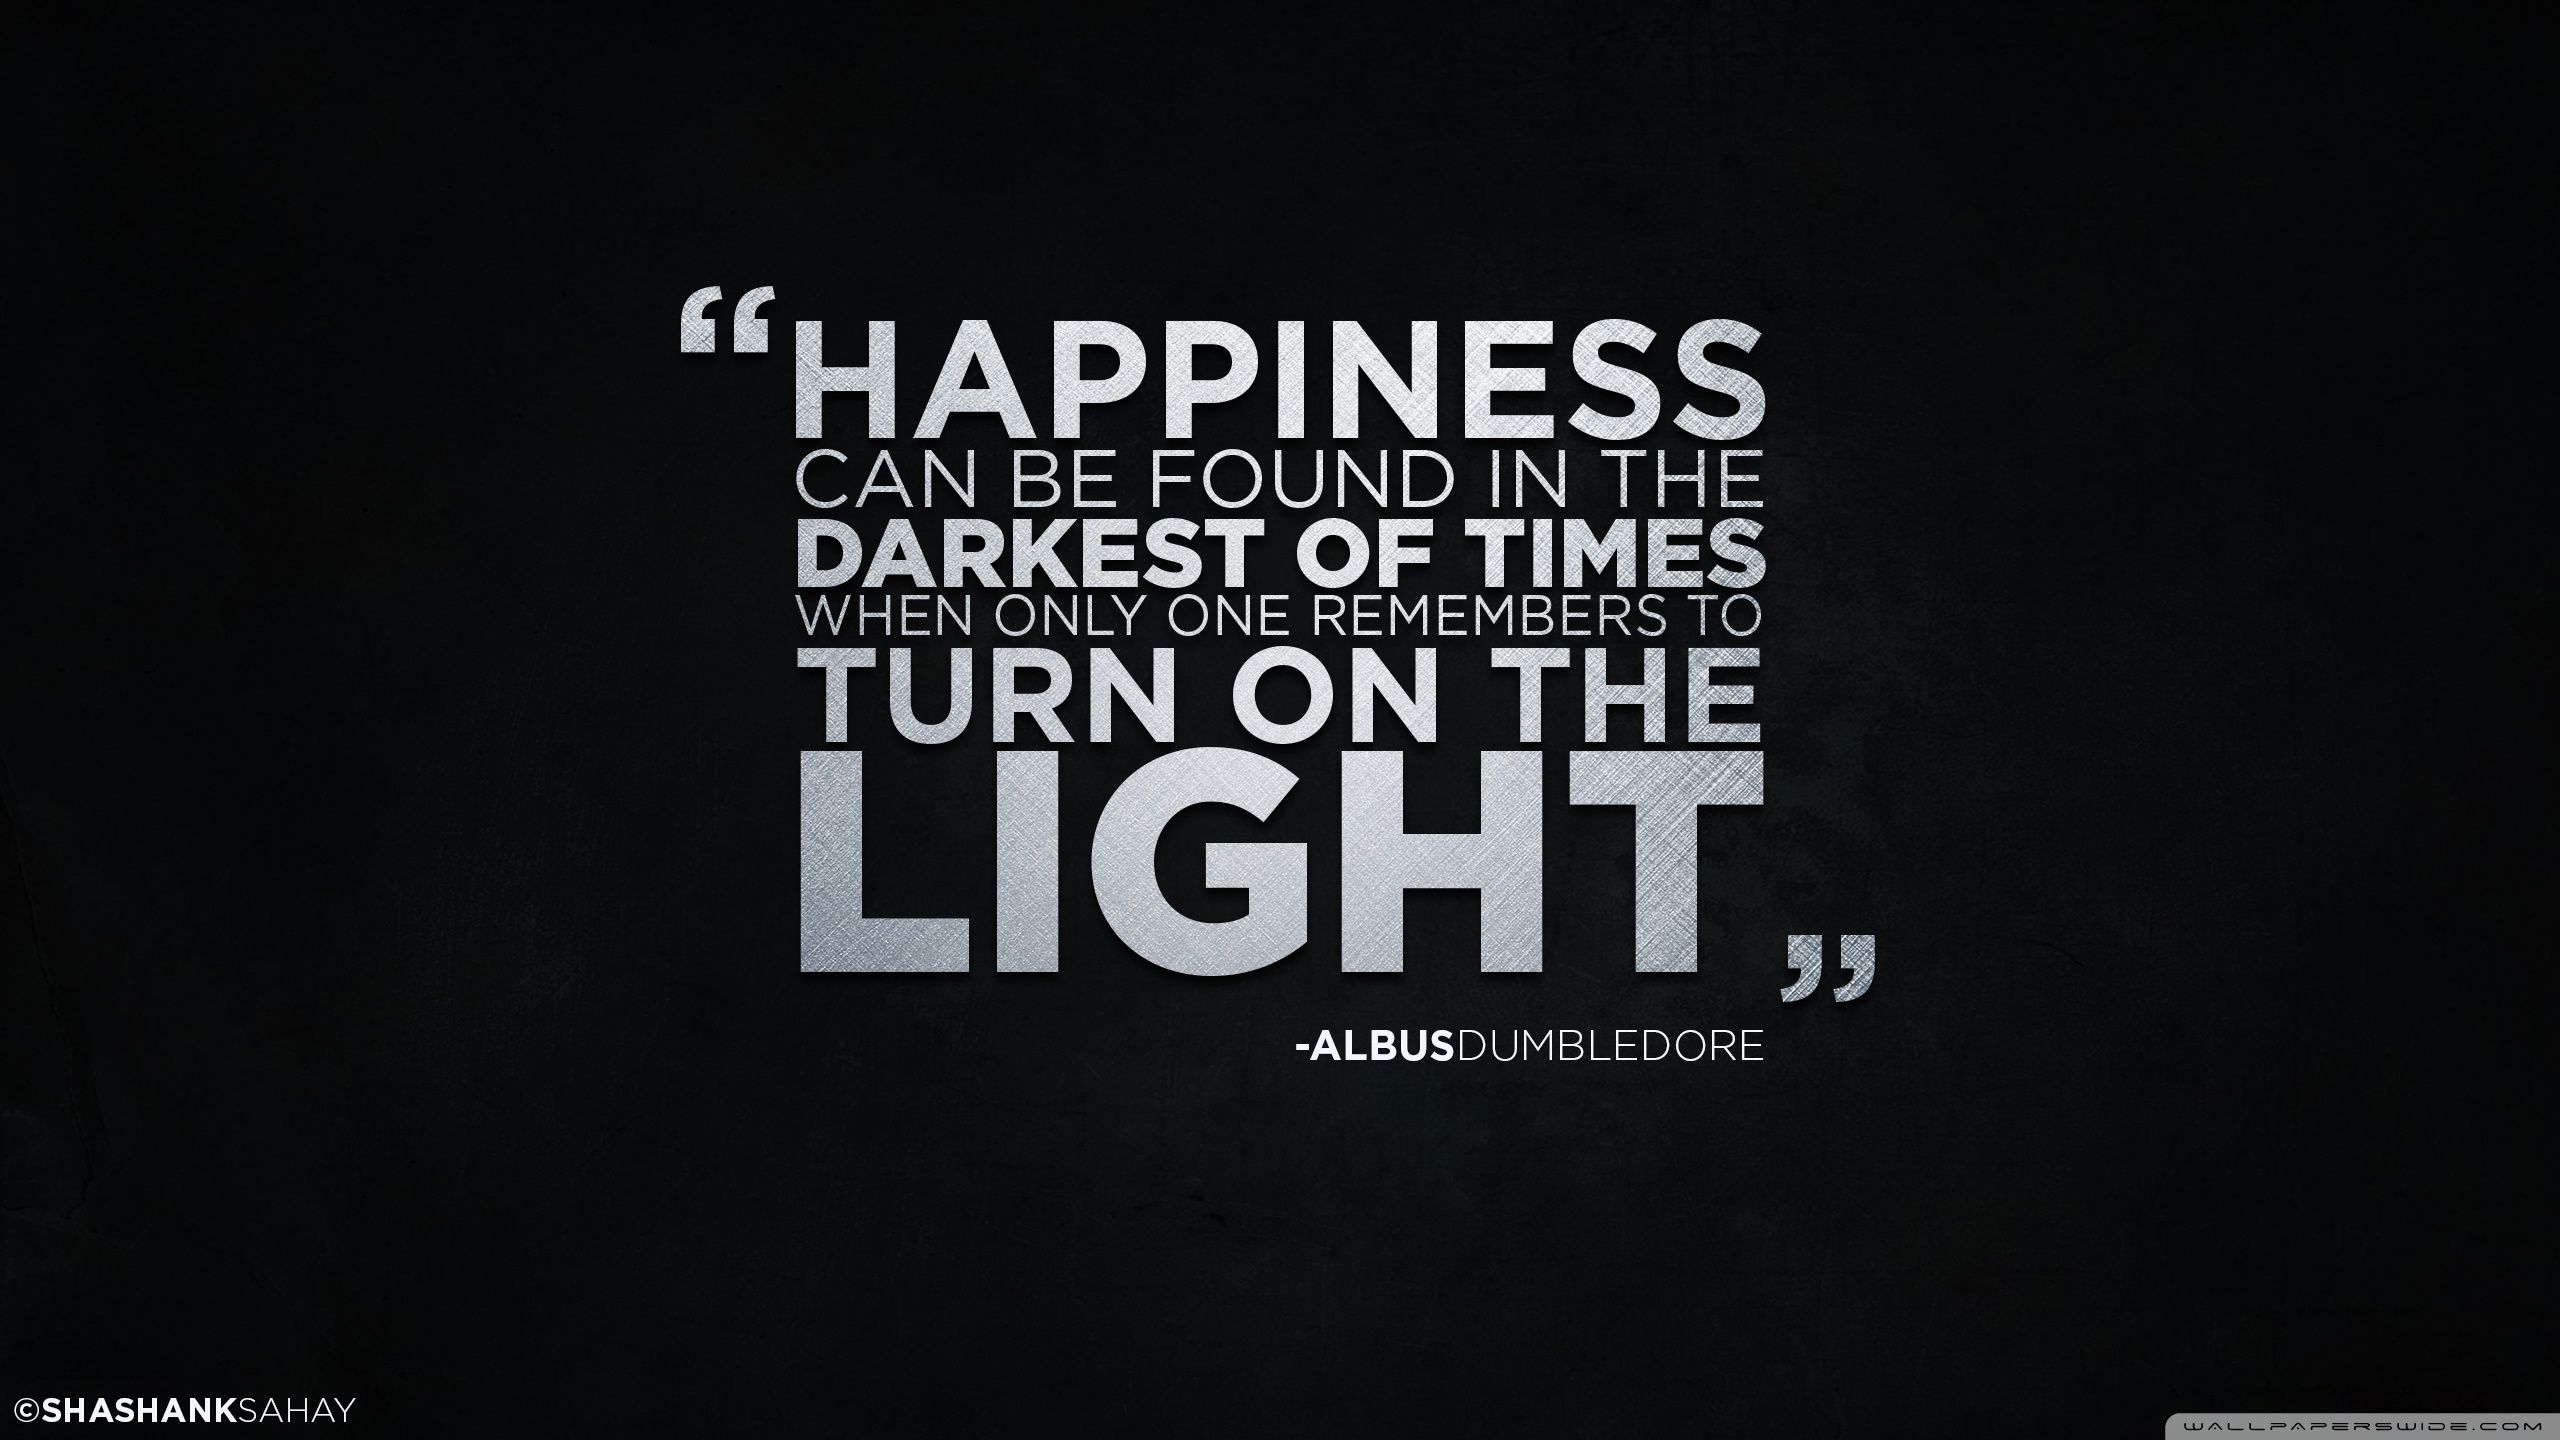 Quotes From Albus Dumbledore Quotesgram Dengan Gambar Kata